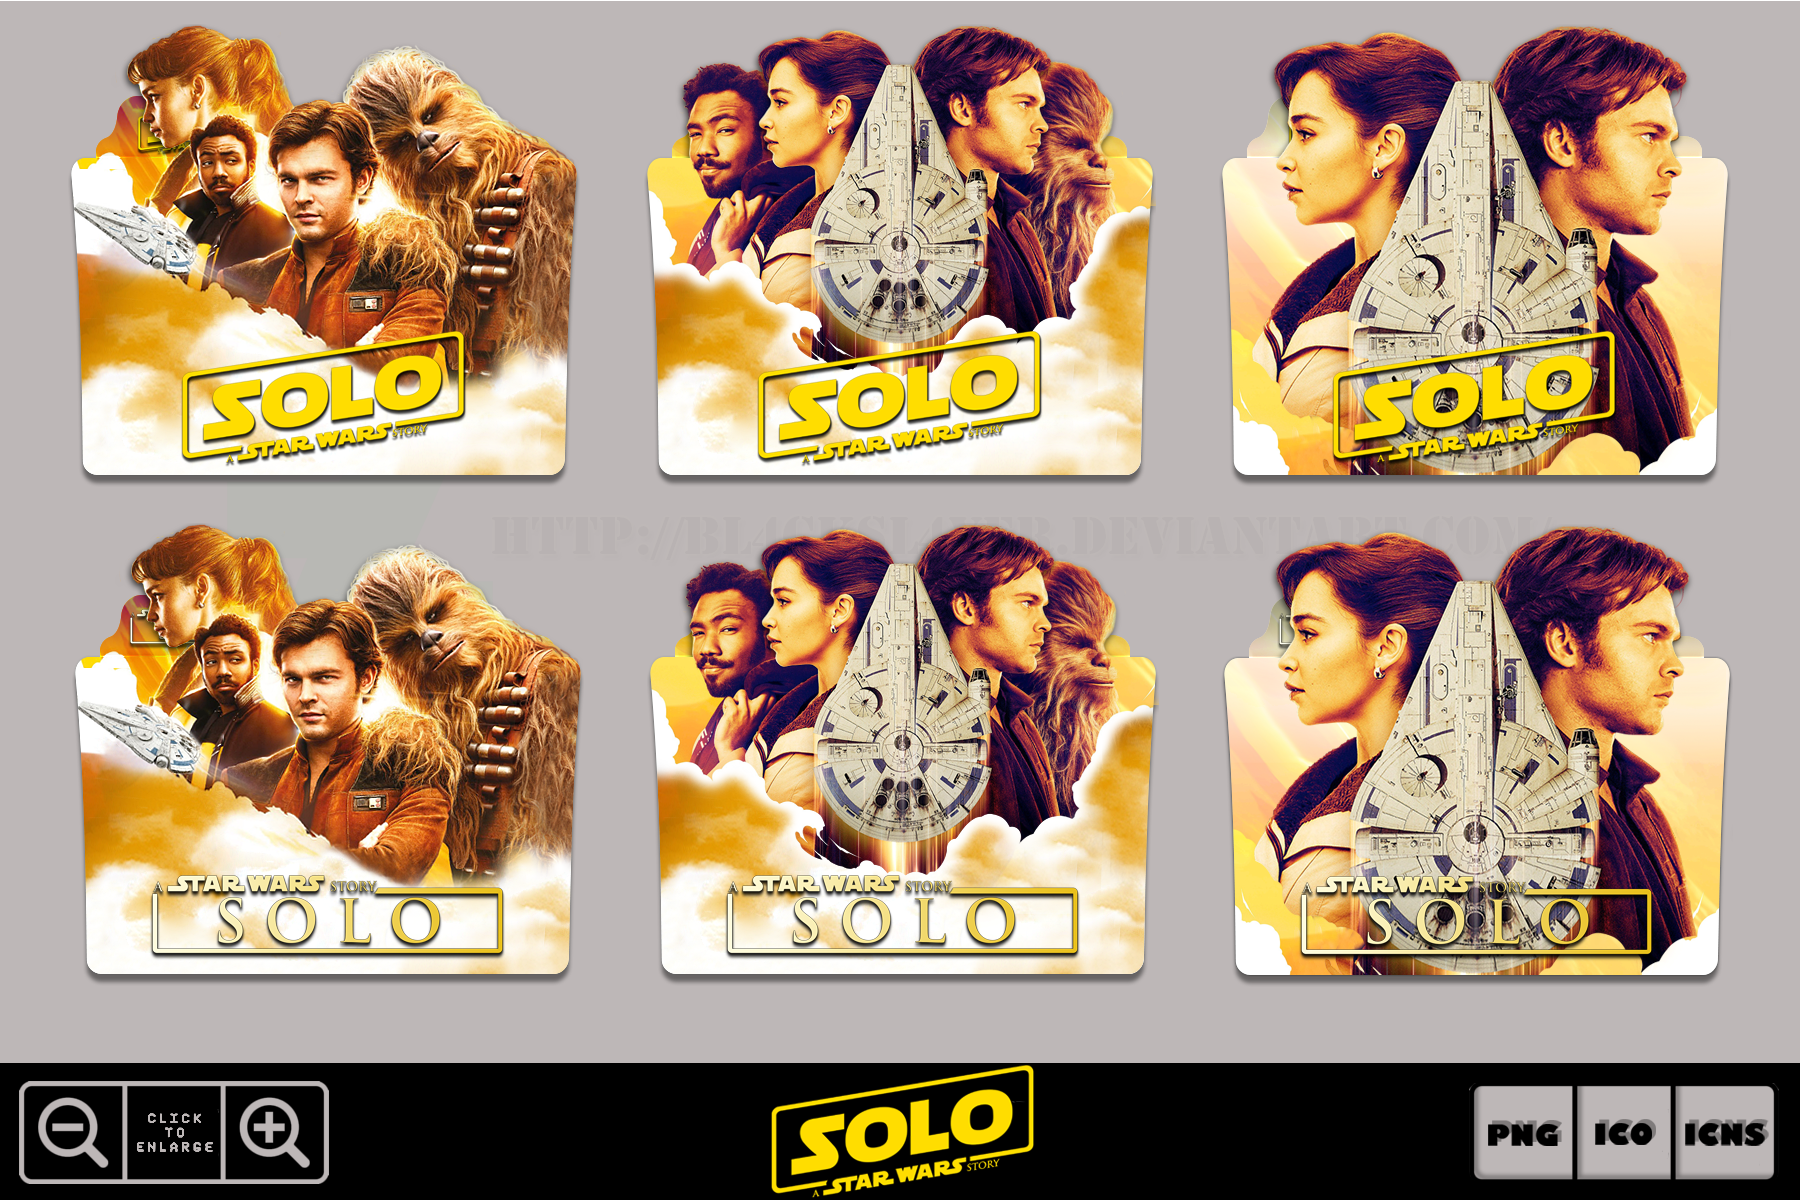 Solo A Star Wars Story 2018 Folder Icon Pack 1 By Bl4cksl4yer On Deviantart